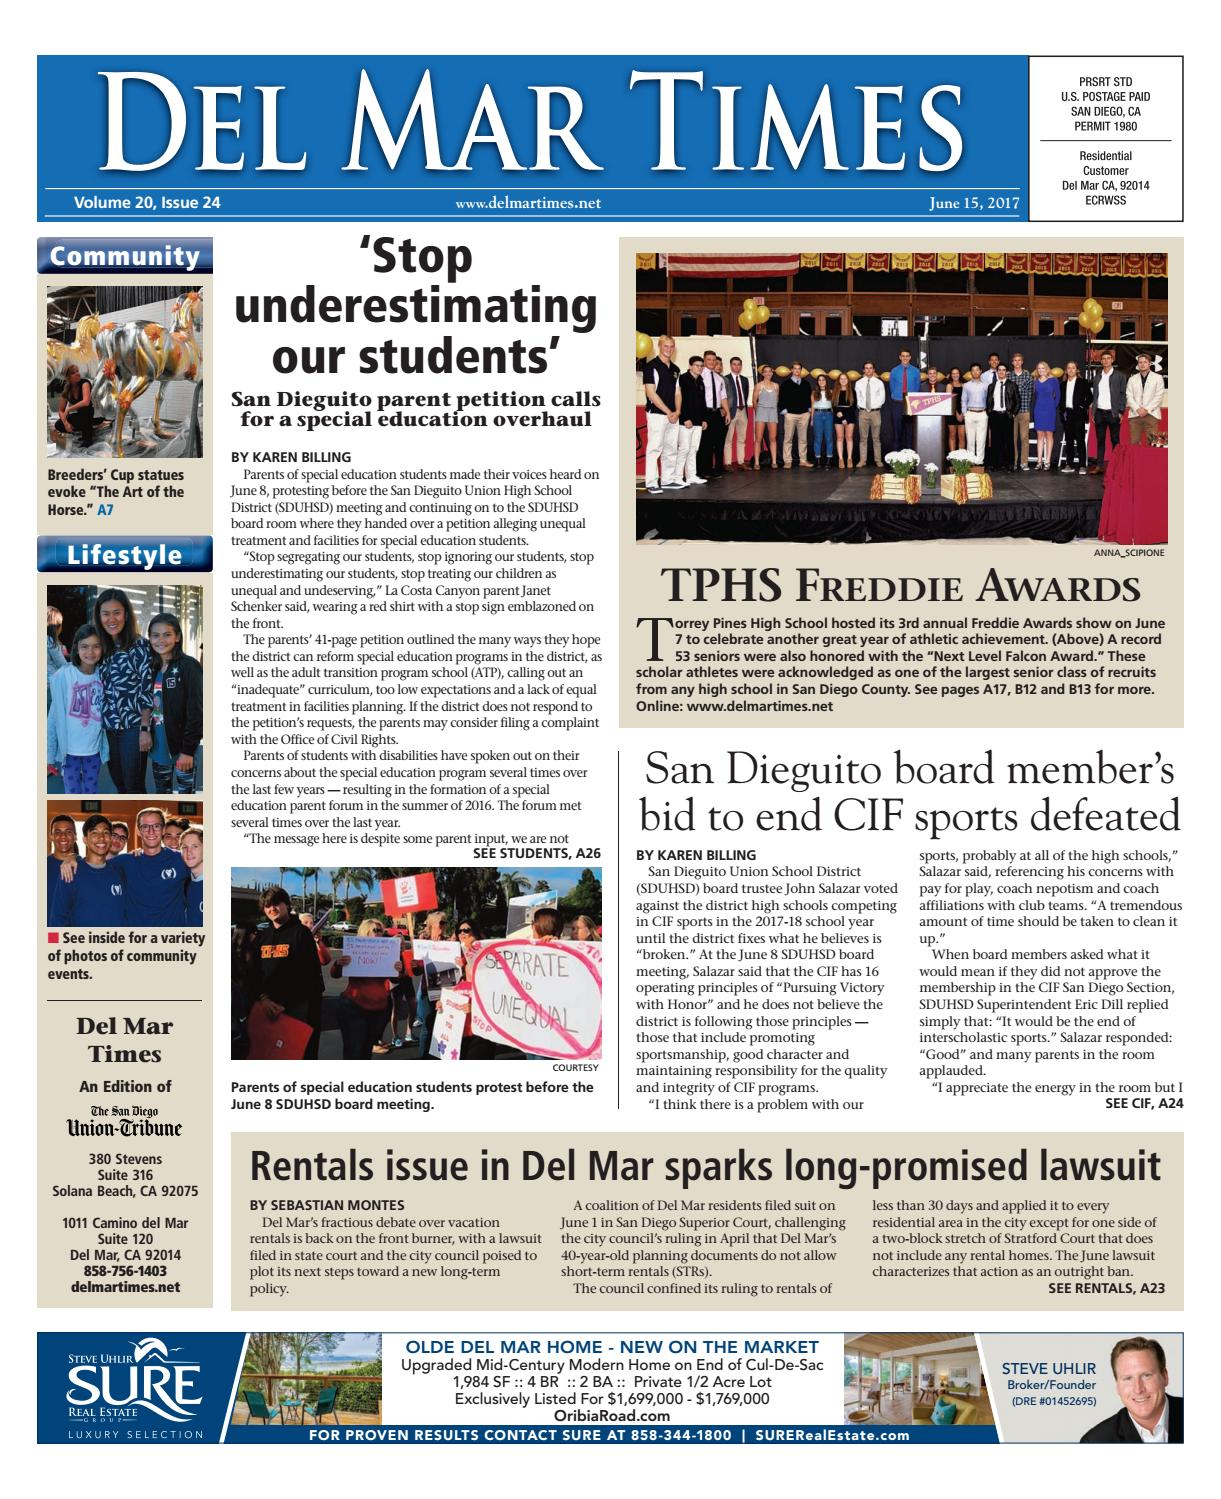 Del Mar Times 06 15 17 by MainStreet Media - issuu